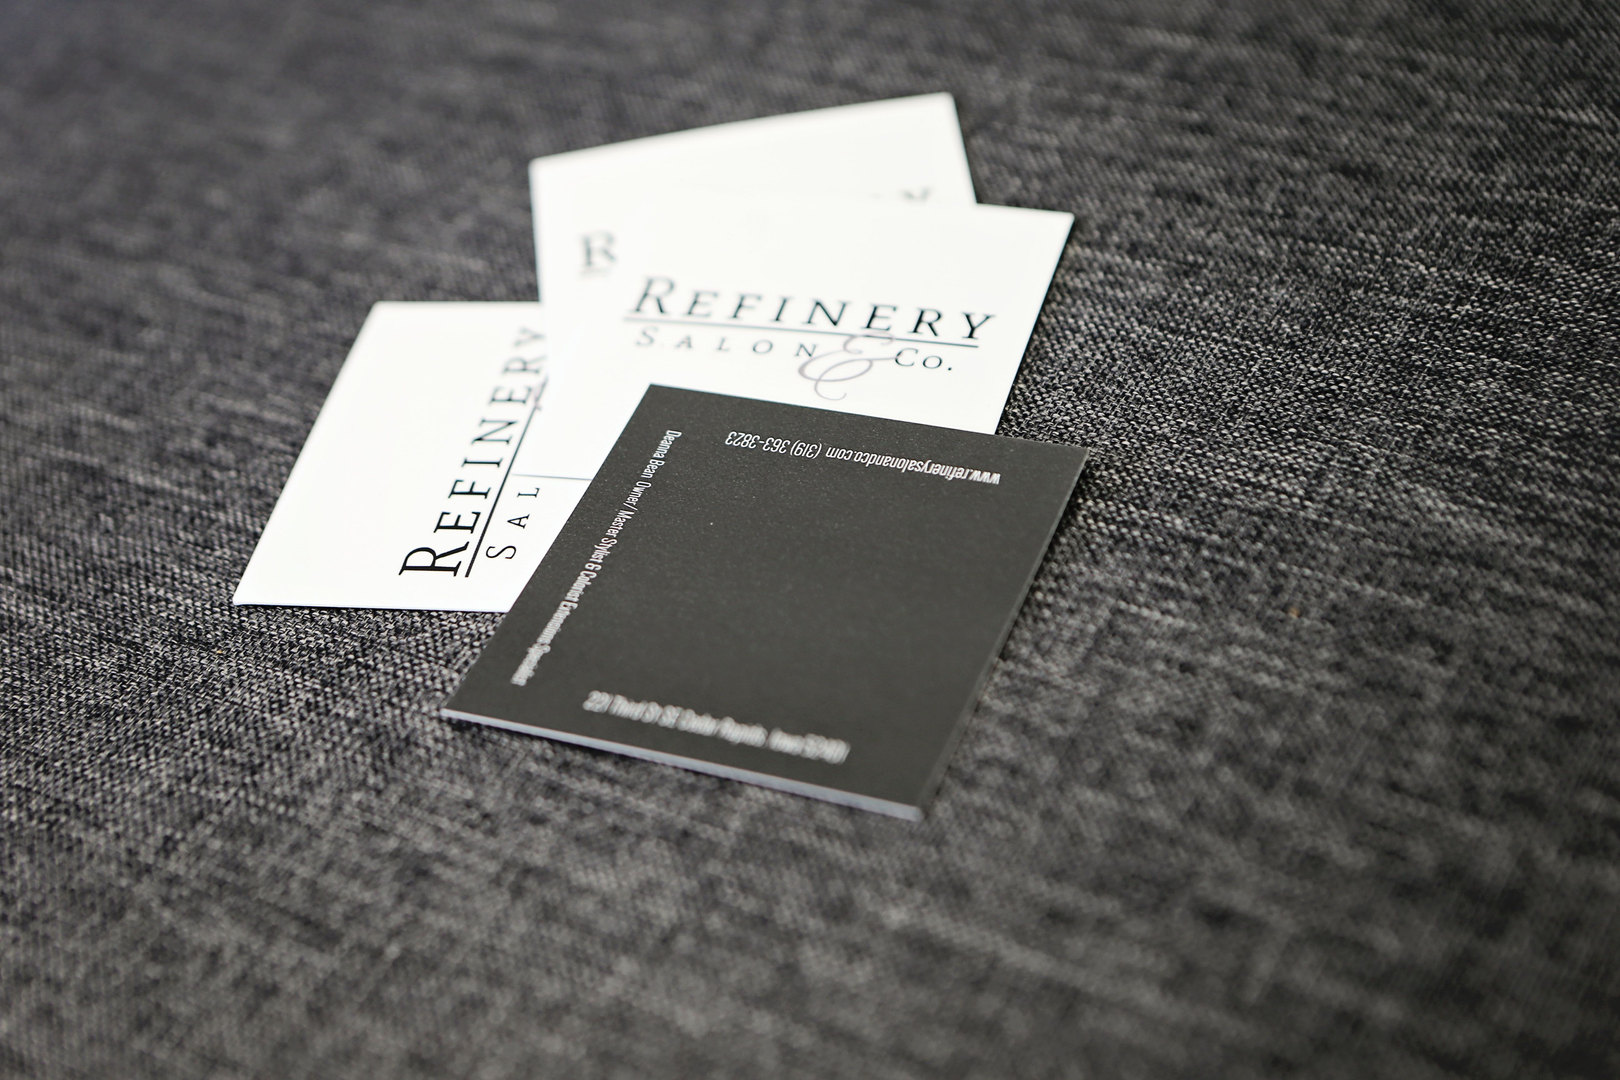 Refinery Cards